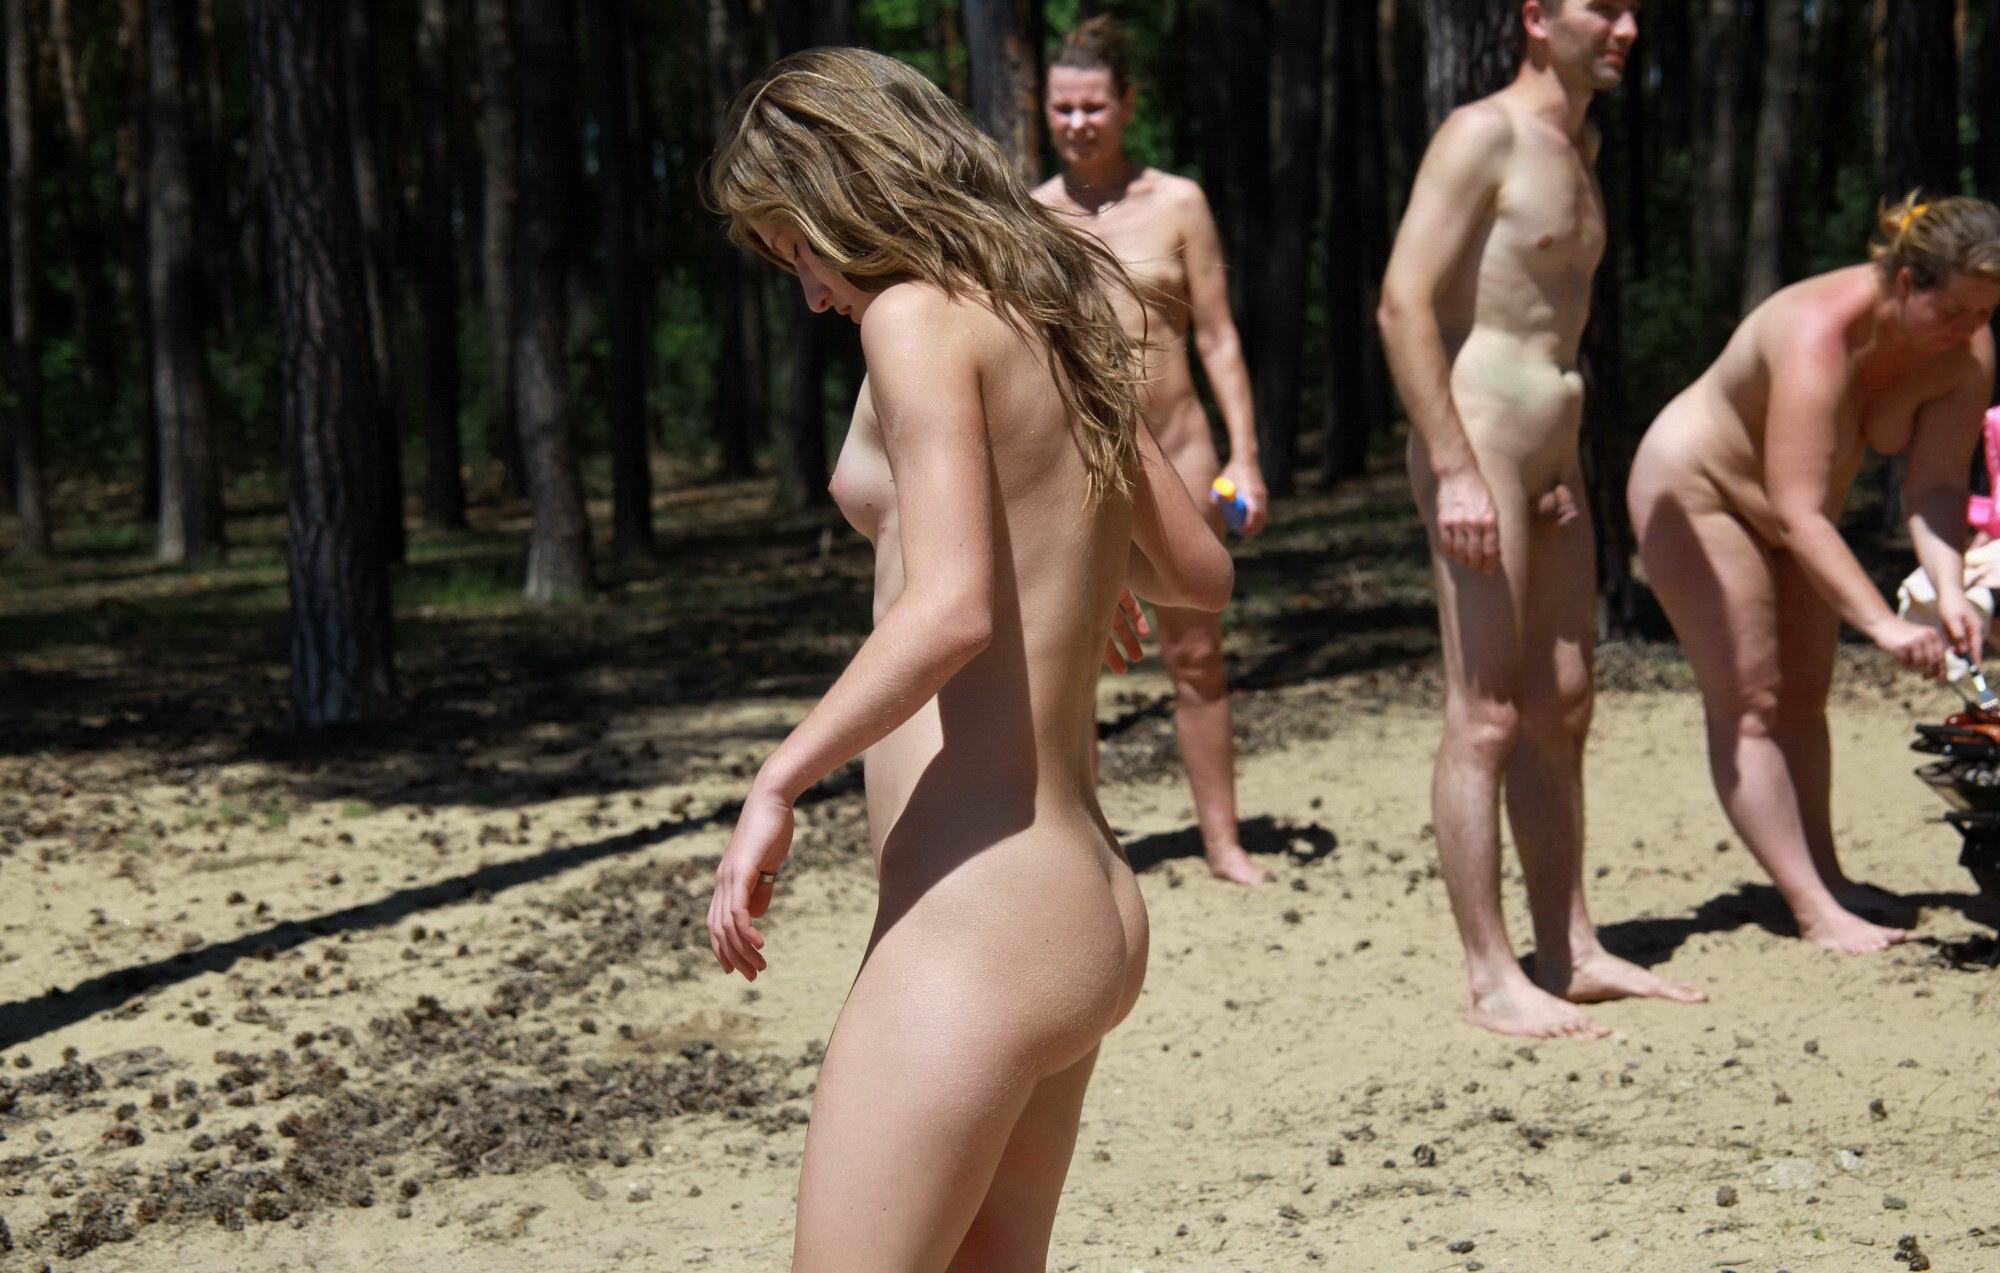 https://voyeurpapa.com/wp-content/uploads/2016/12/Nudists-family-nude-beach-71.jpg